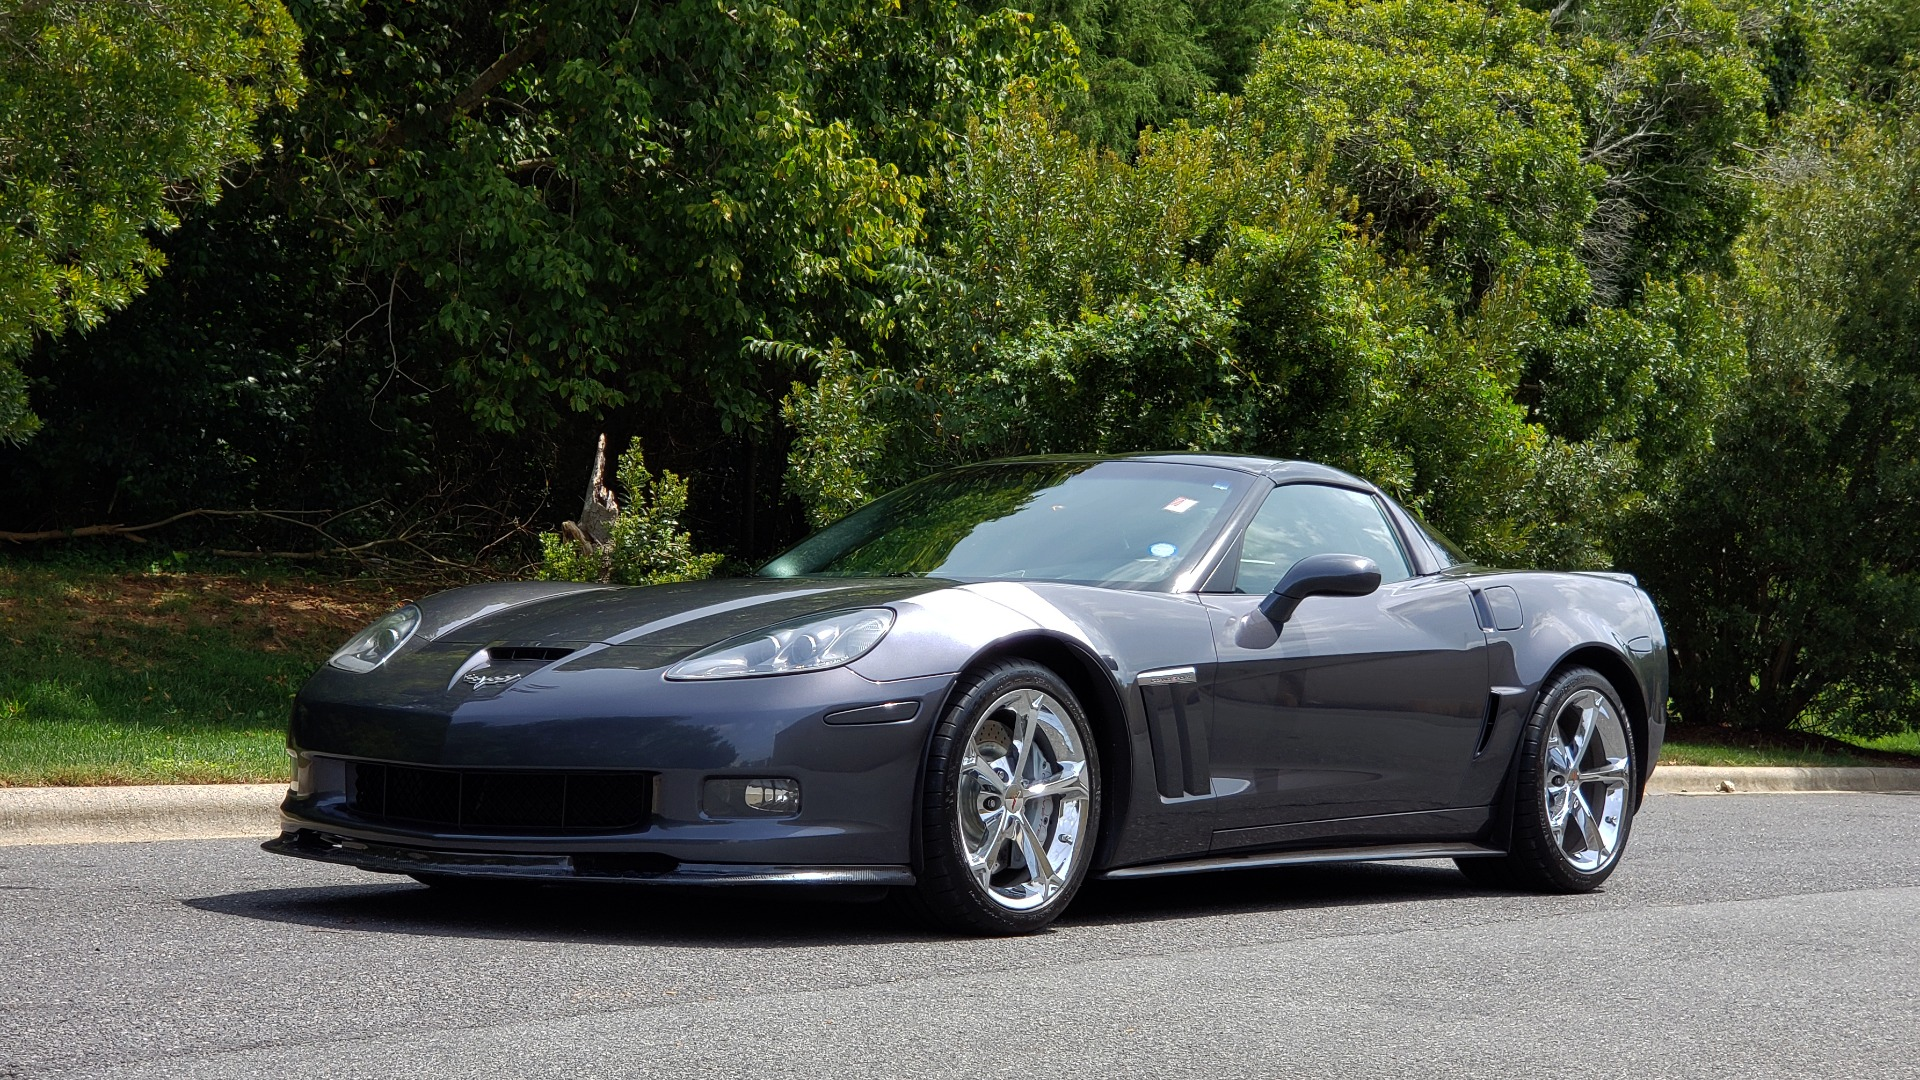 Used 2010 Chevrolet CORVETTE Z16 GRAND SPORT 3LT / HUD / 6.2L V8 / 6-SPD AUTO / NPP EXH for sale Sold at Formula Imports in Charlotte NC 28227 7